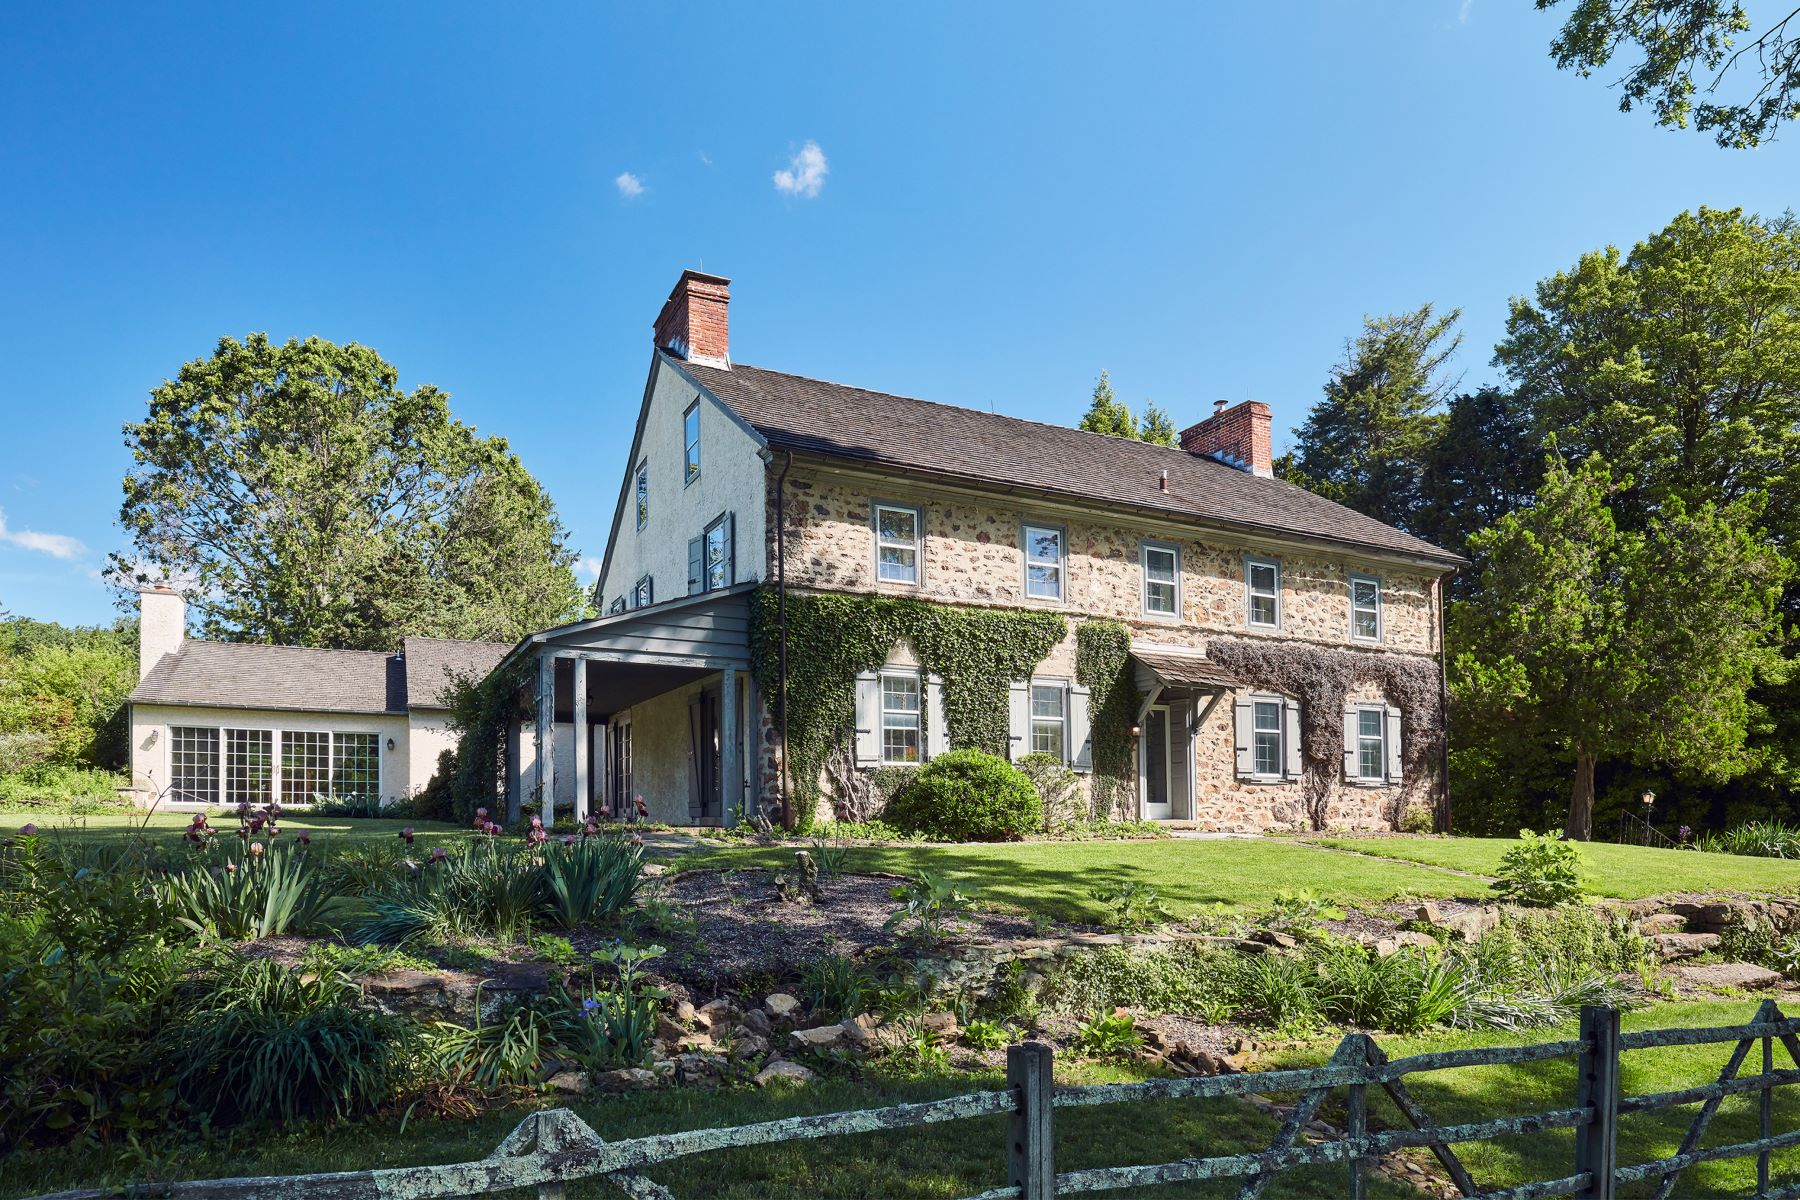 Single Family Homes for Sale at Little Brook Farm 2221 WHITE HORSE RD, Berwyn, Pennsylvania 19312 United States